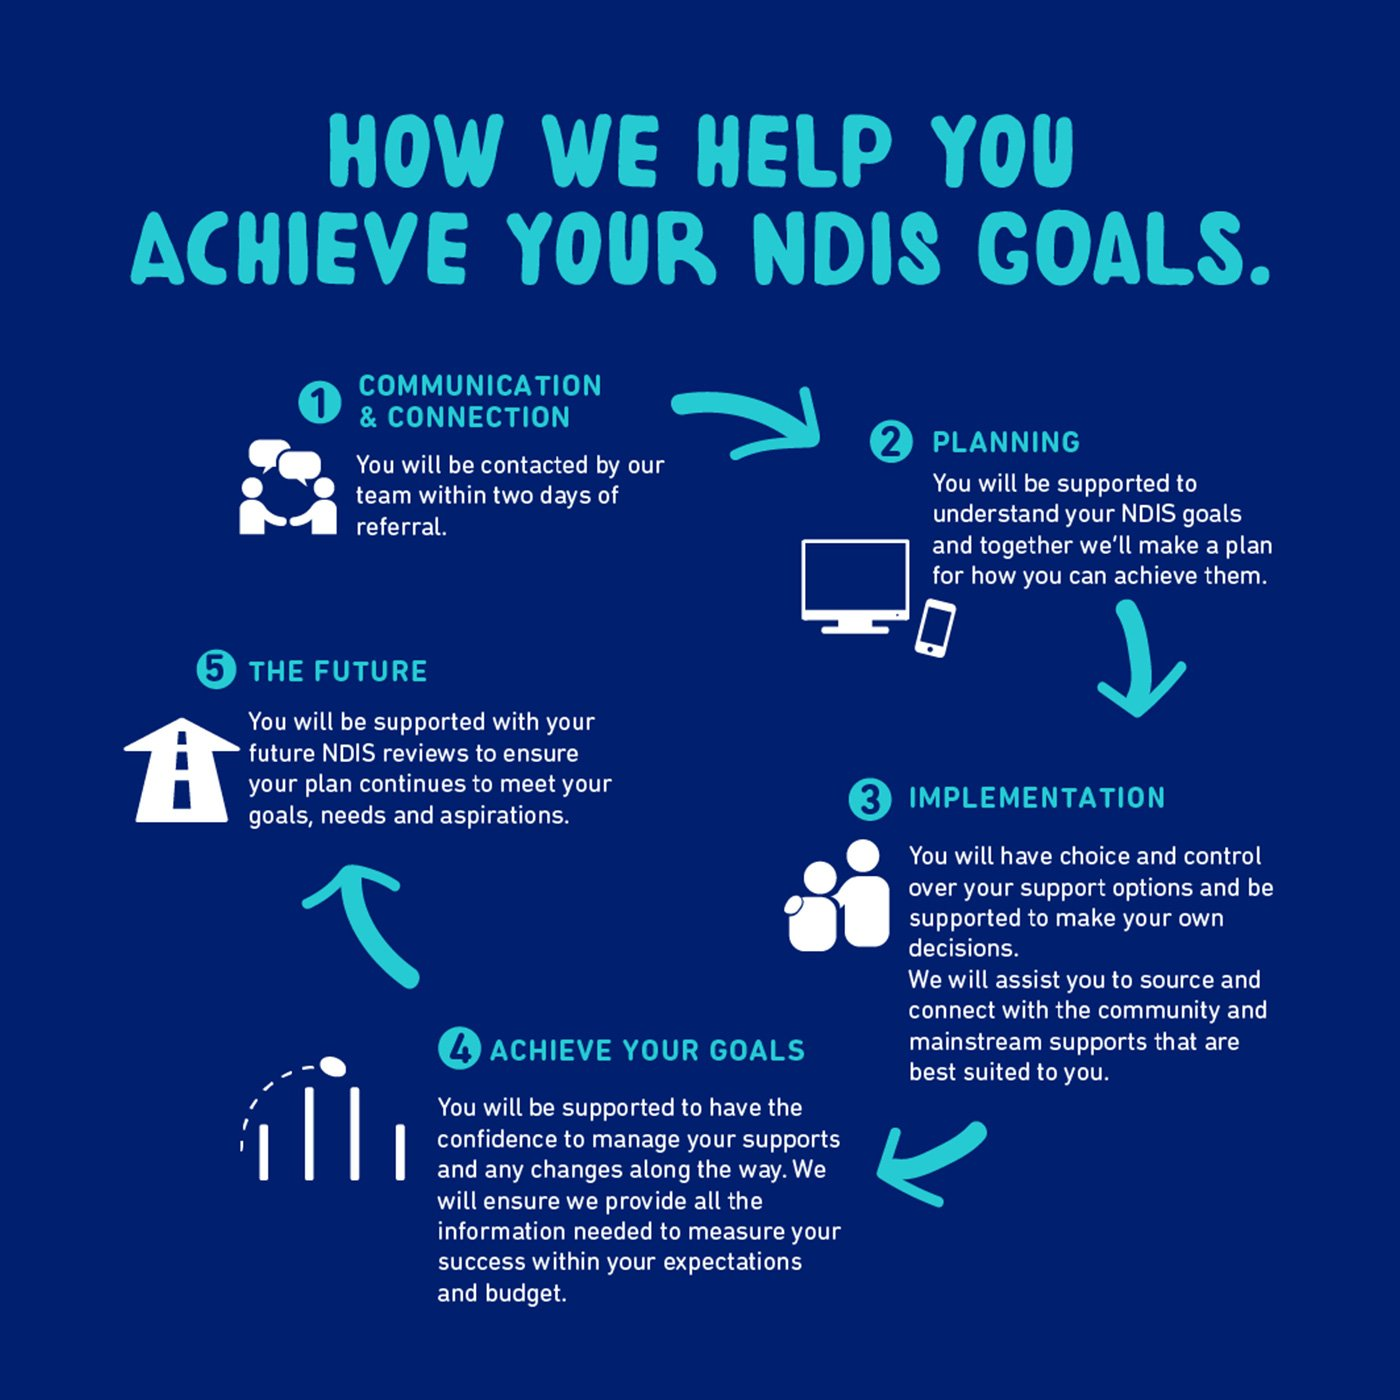 flow chart titled 'how we help you achieve your NDIS goals'